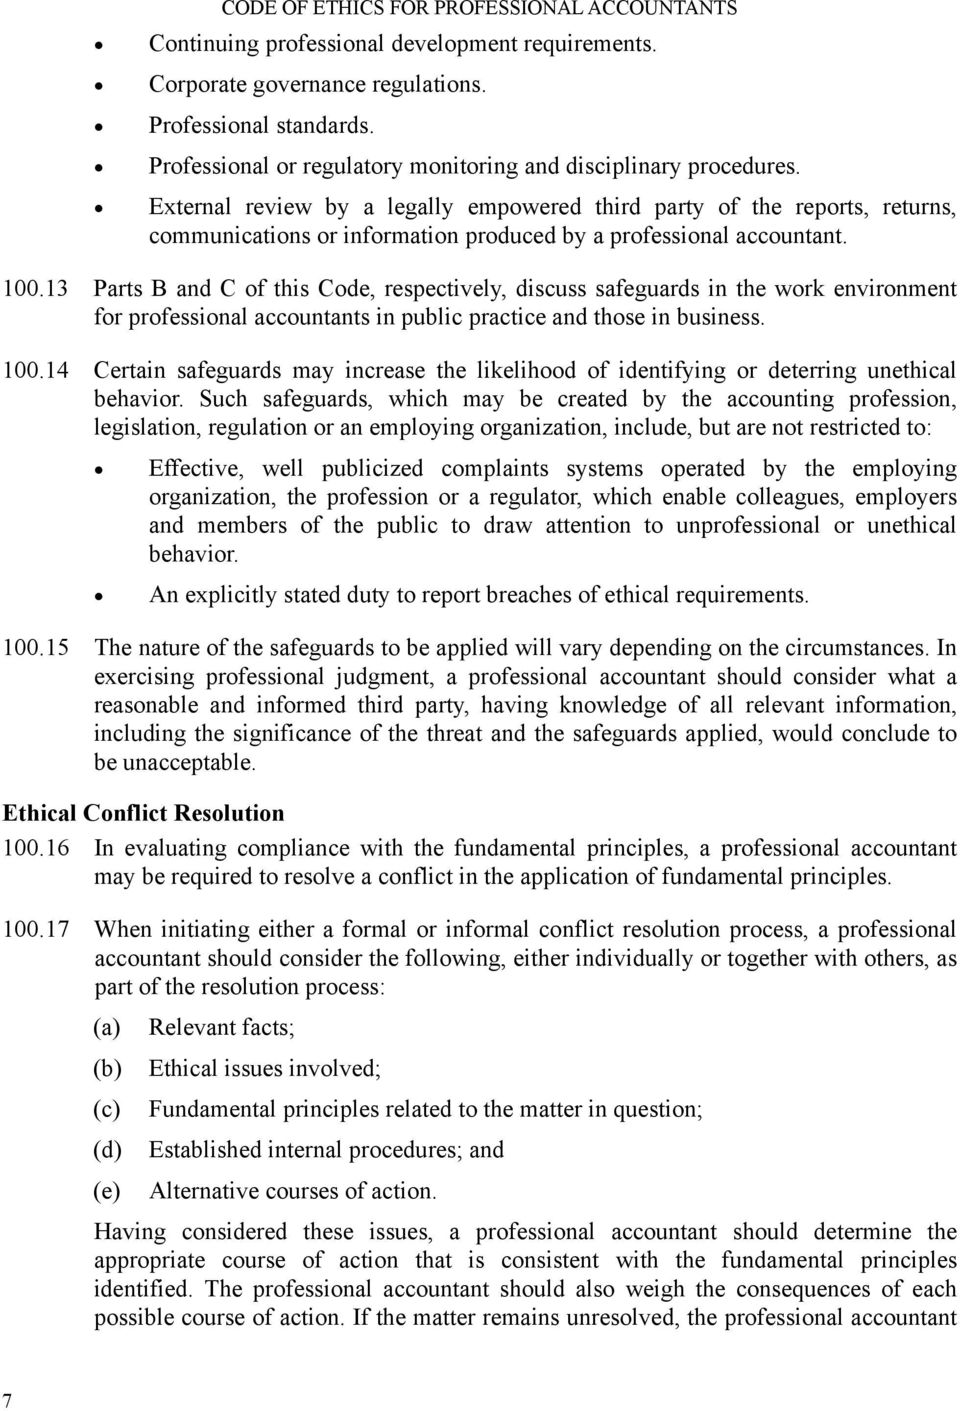 13 Parts B and C of this Code, respectively, discuss safeguards in the work environment for professional accountants in public practice and those in business. 100.